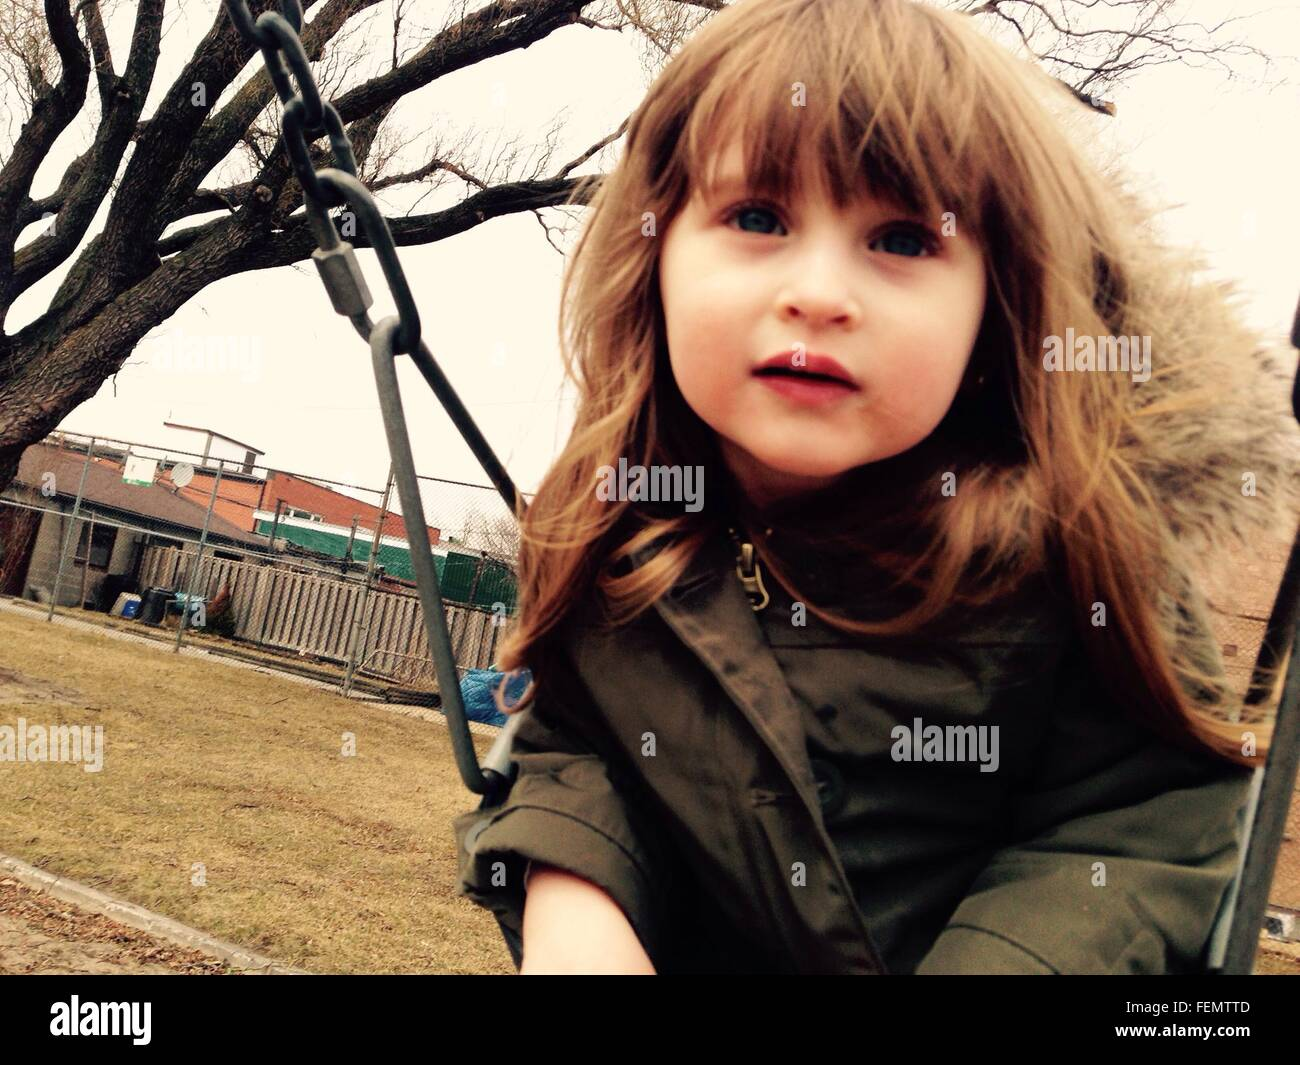 Portrait of Girl Sitting on Chain Swing Ride Photo Stock